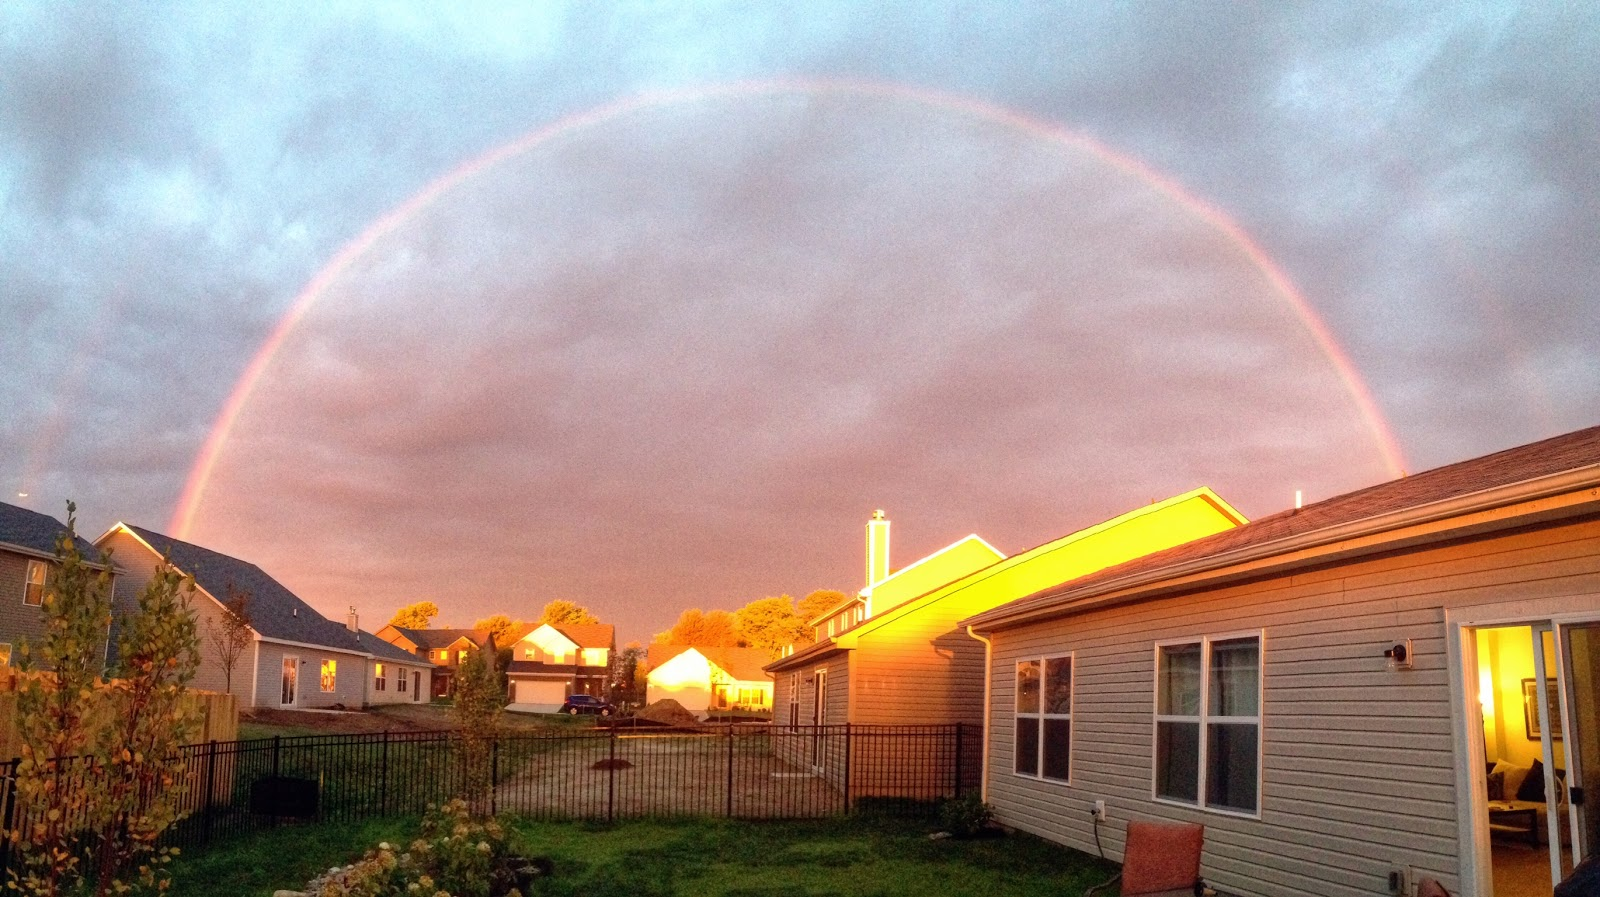 full rainbow over house with pink middle